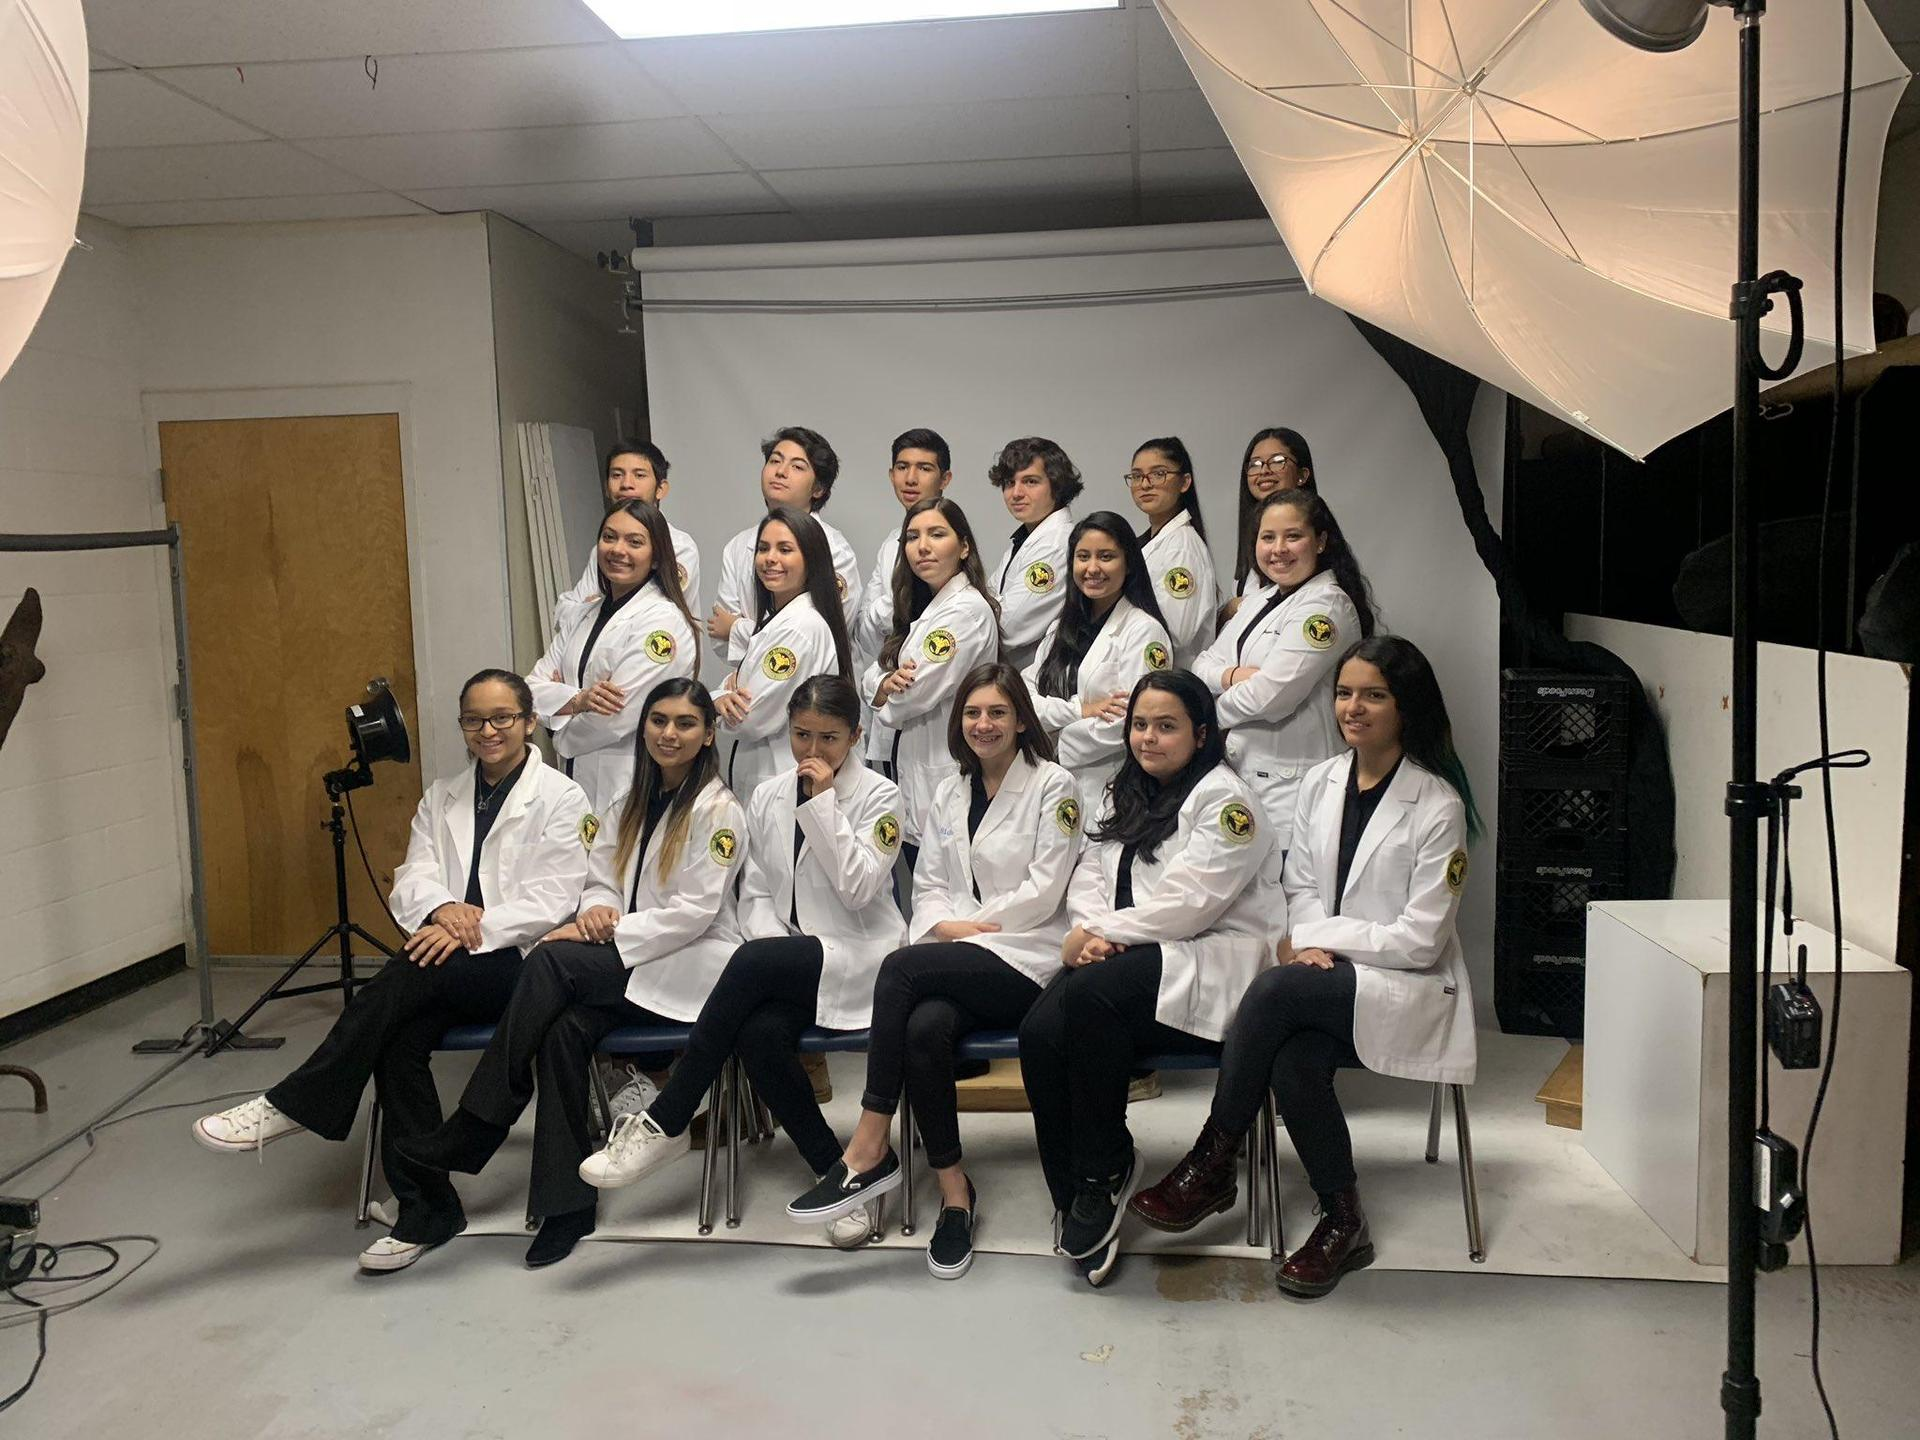 students in lab coats posing for picture